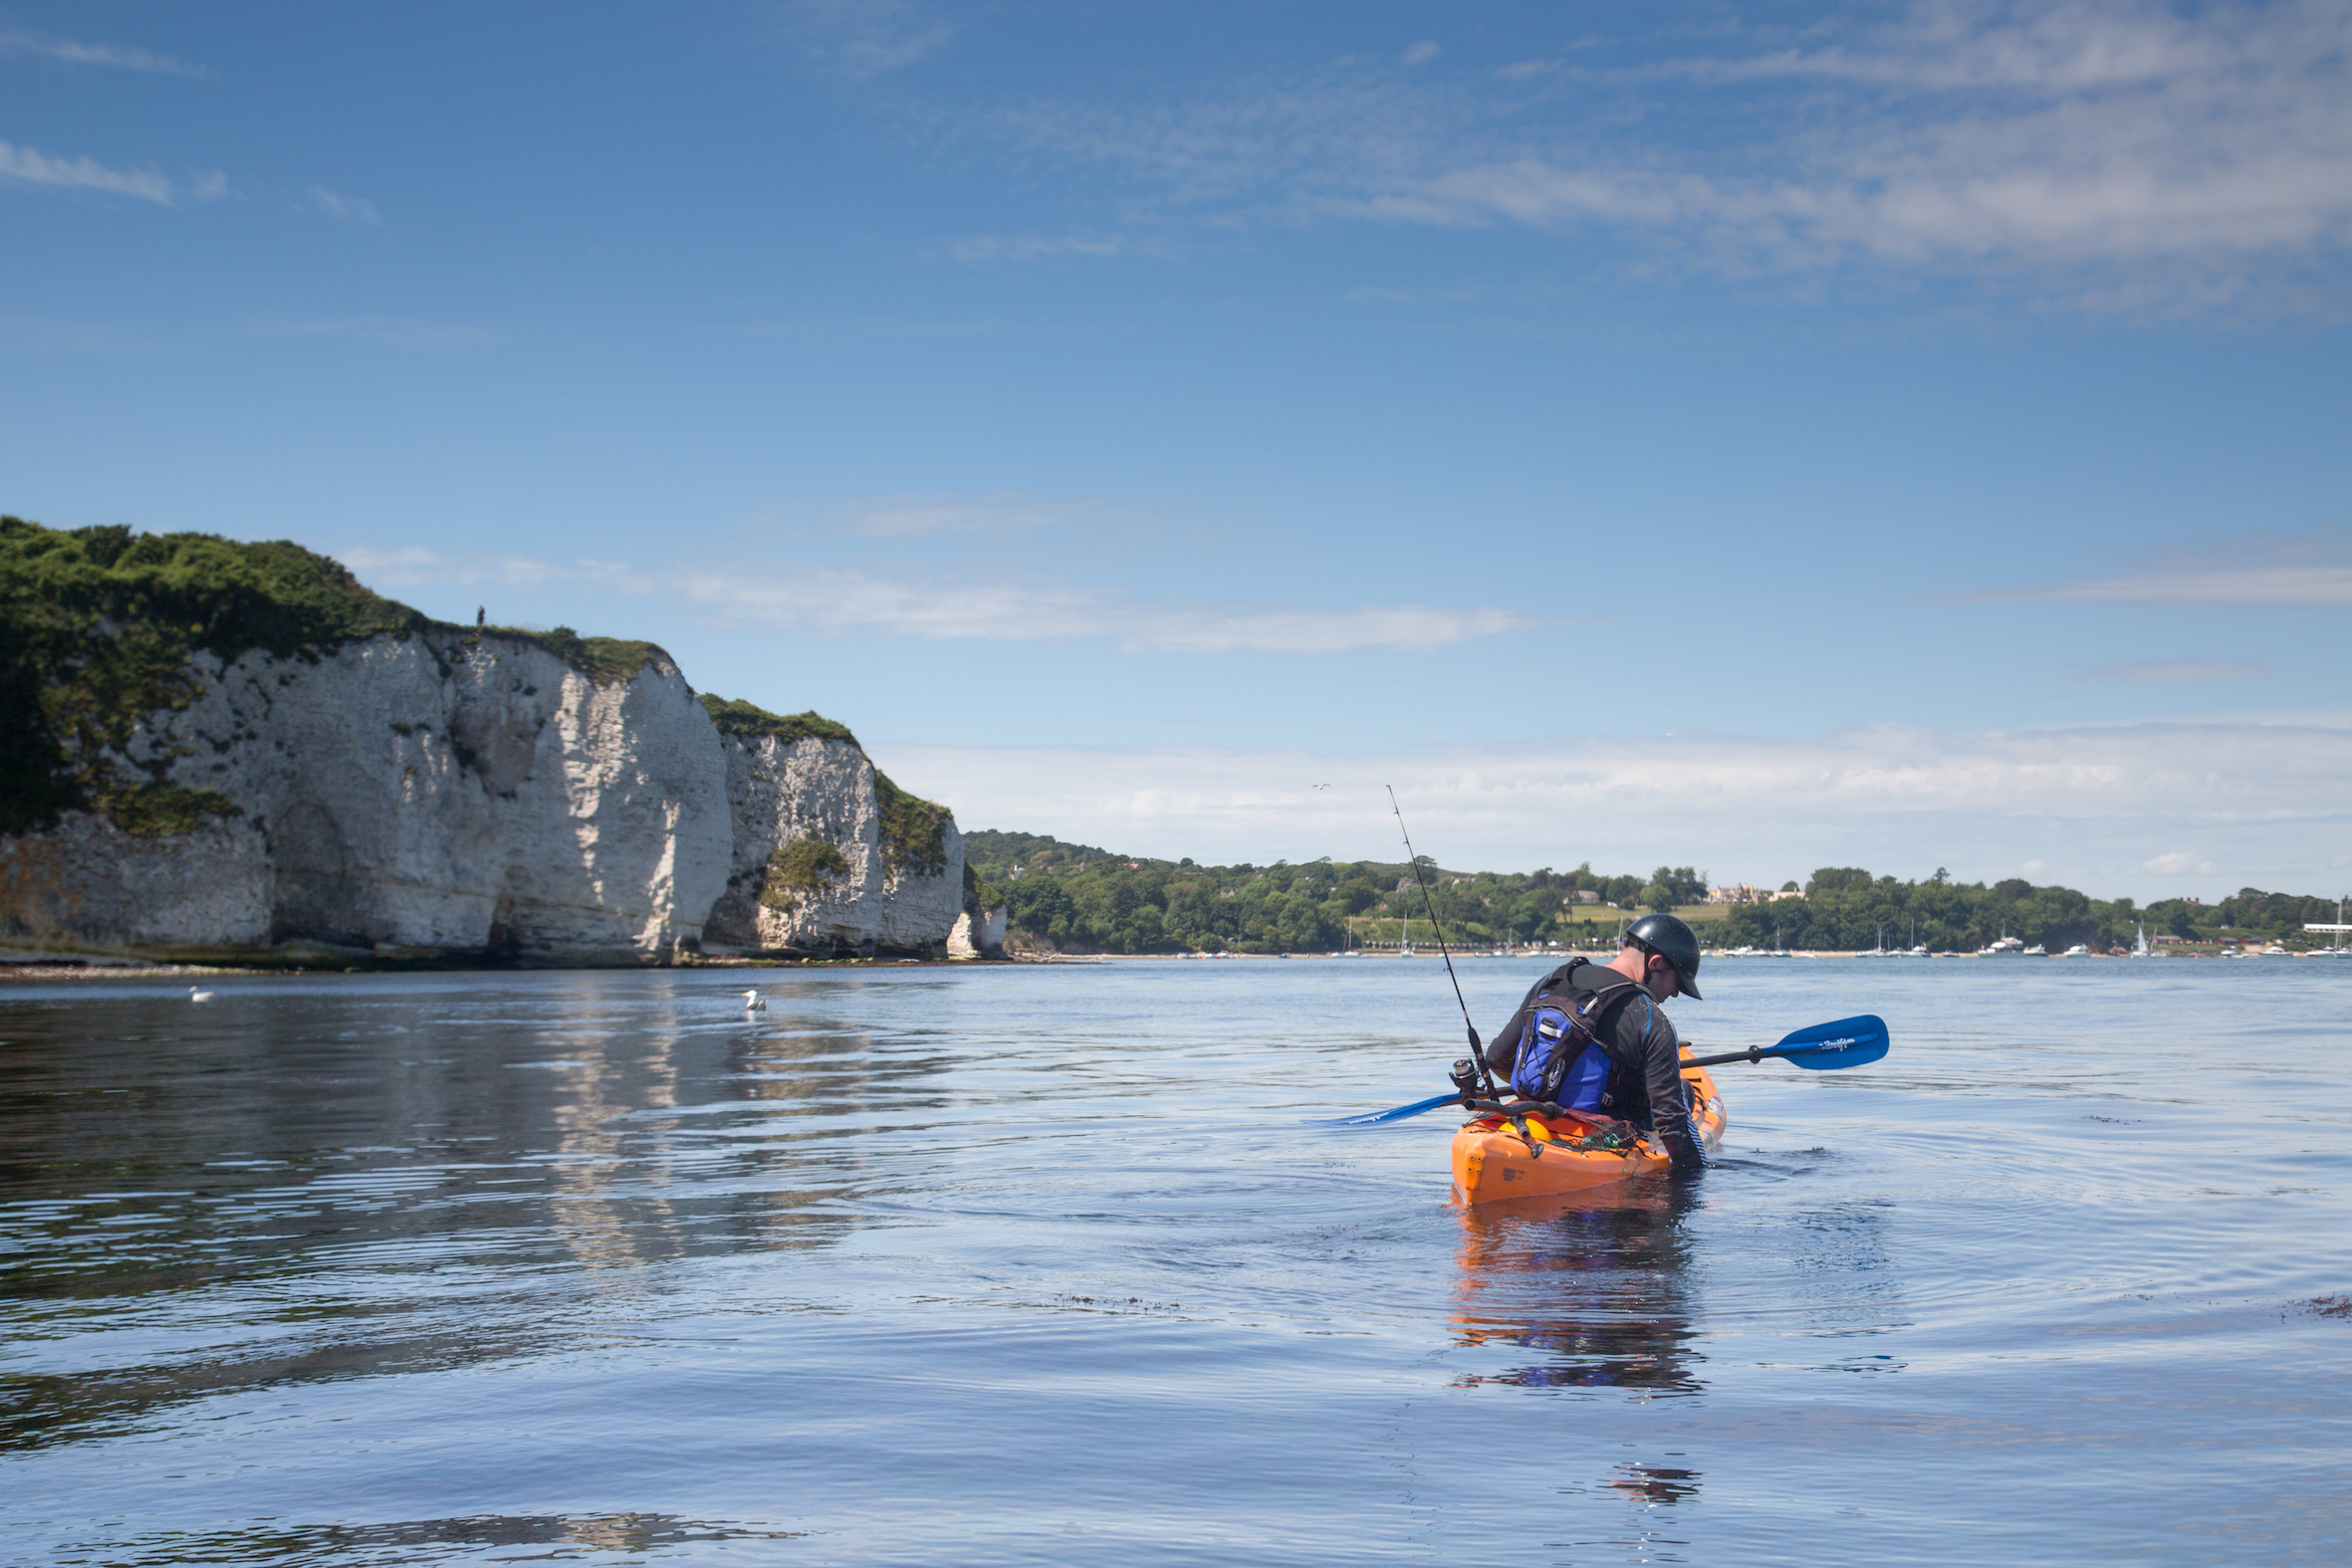 sea kayaking at old harry rocks in dorset